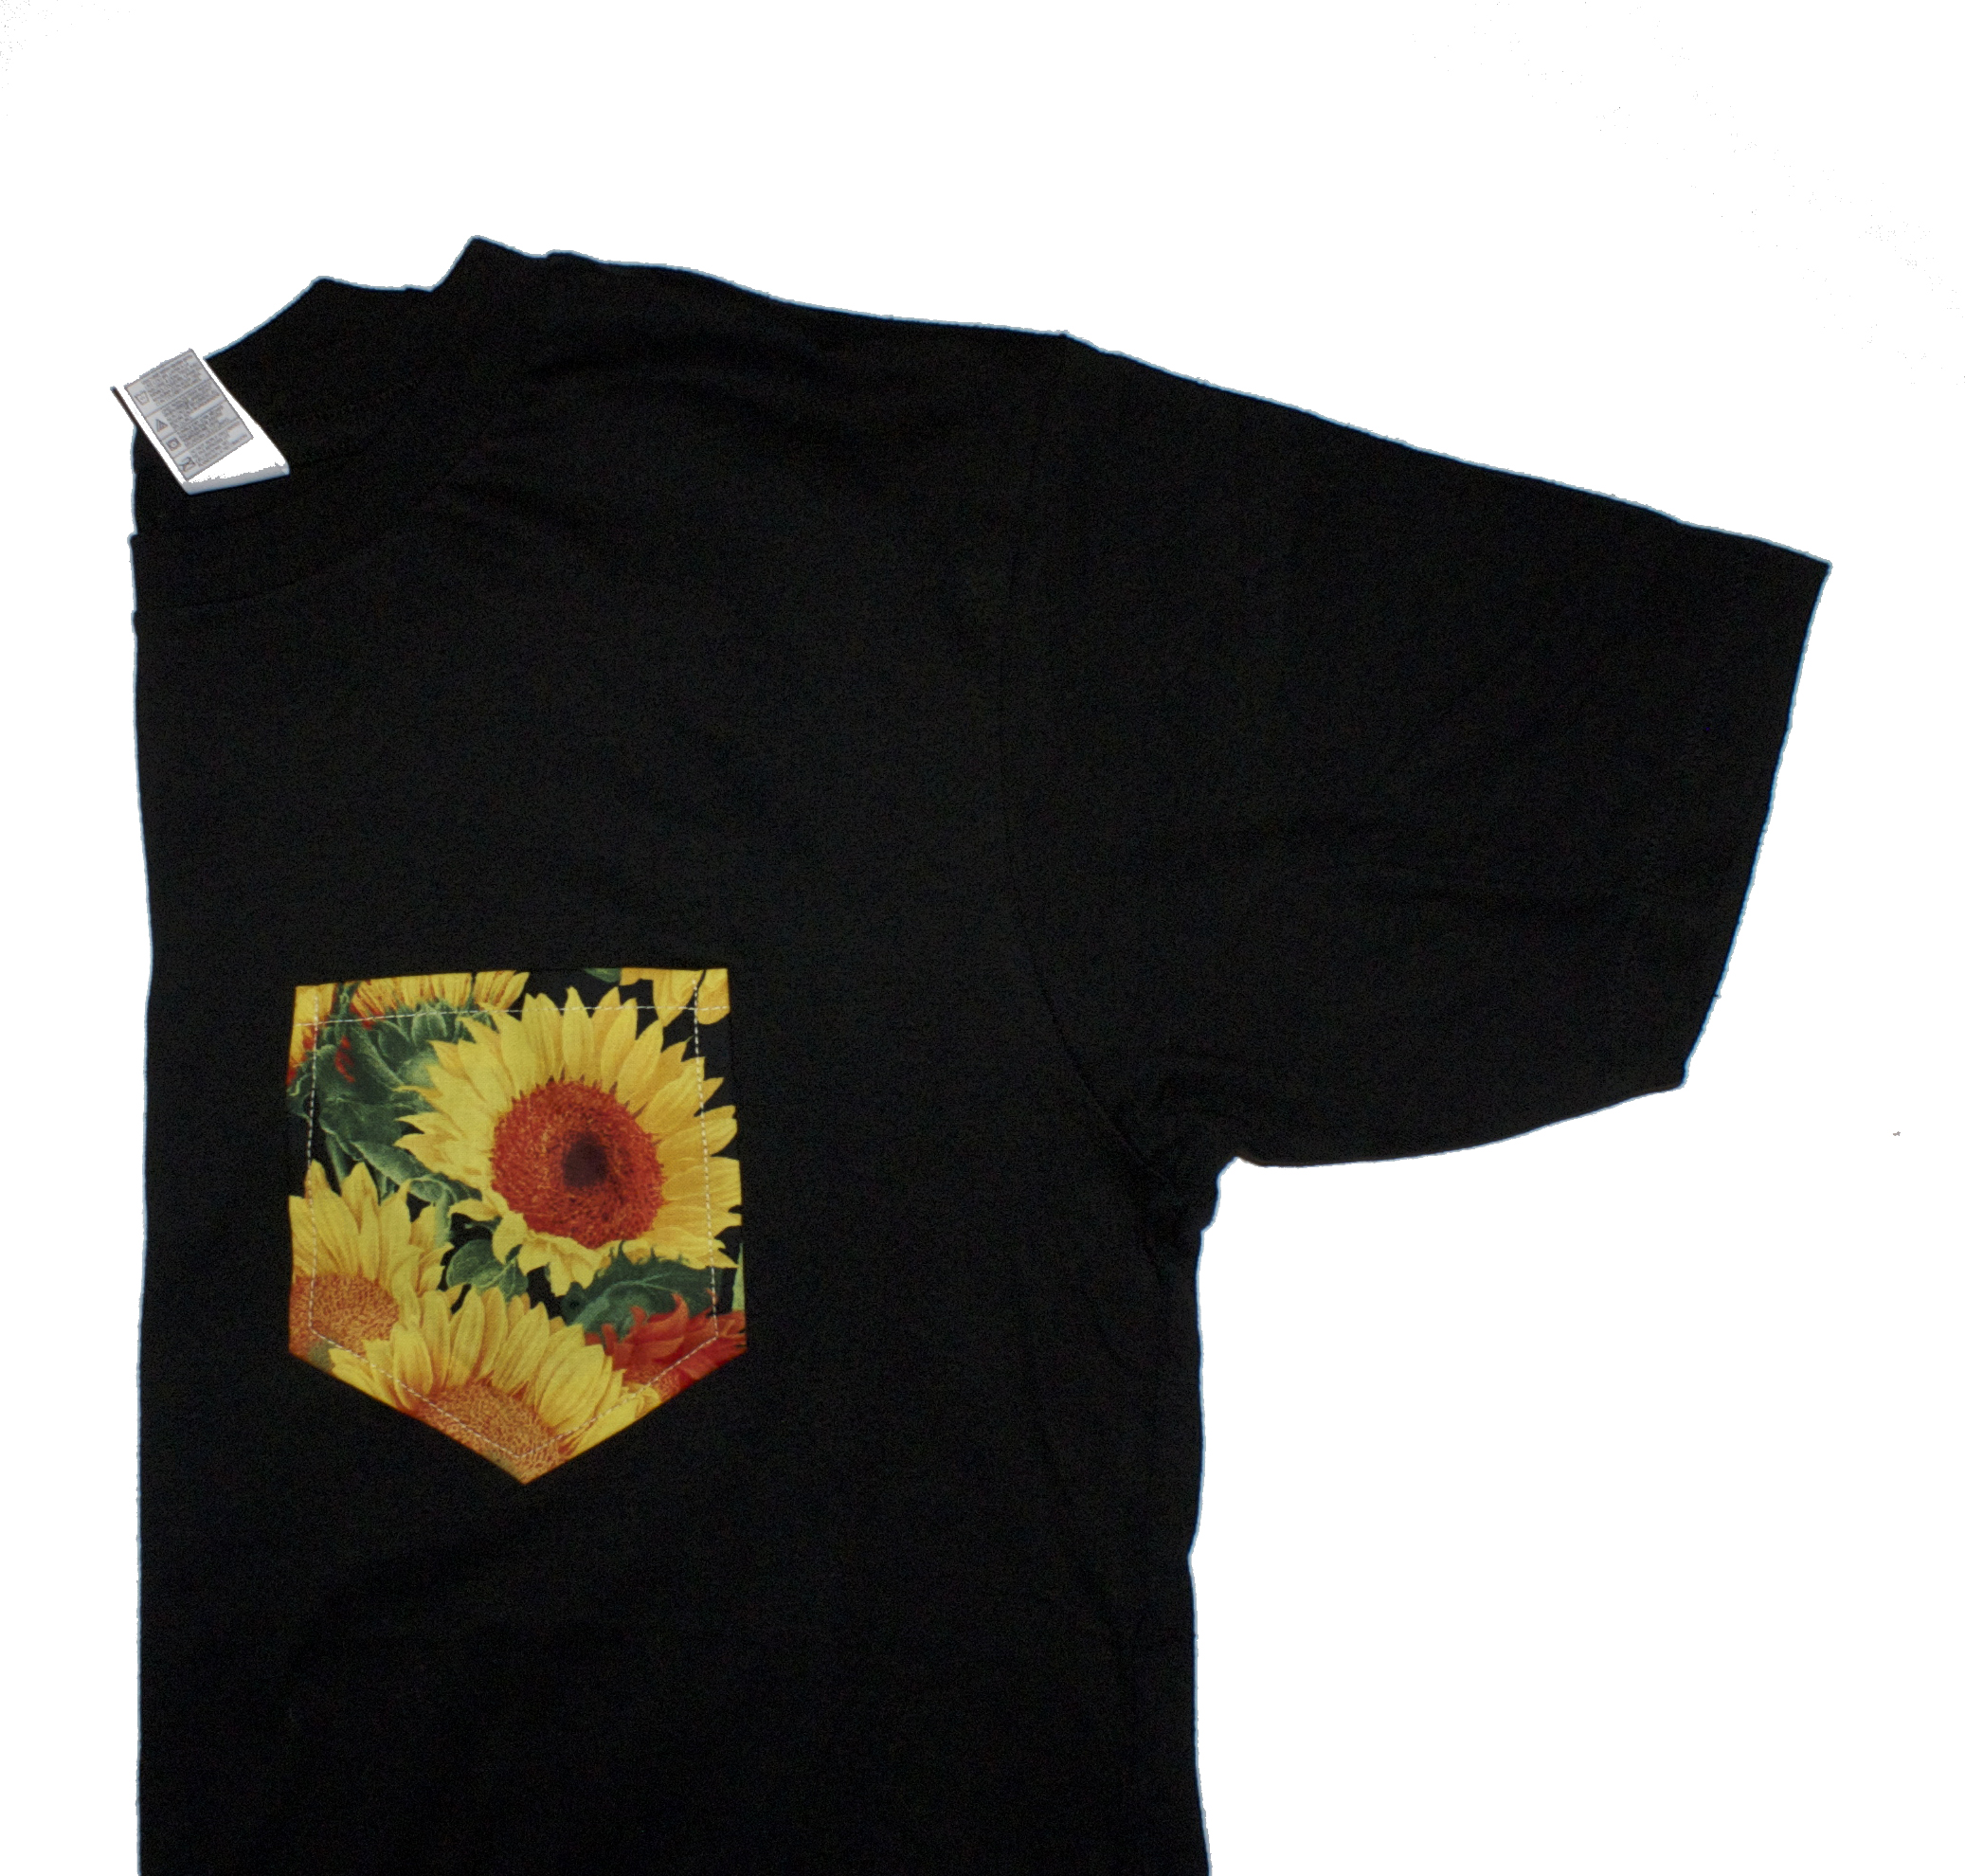 Sunflower pocket tee mint clothing company for Get company shirts made